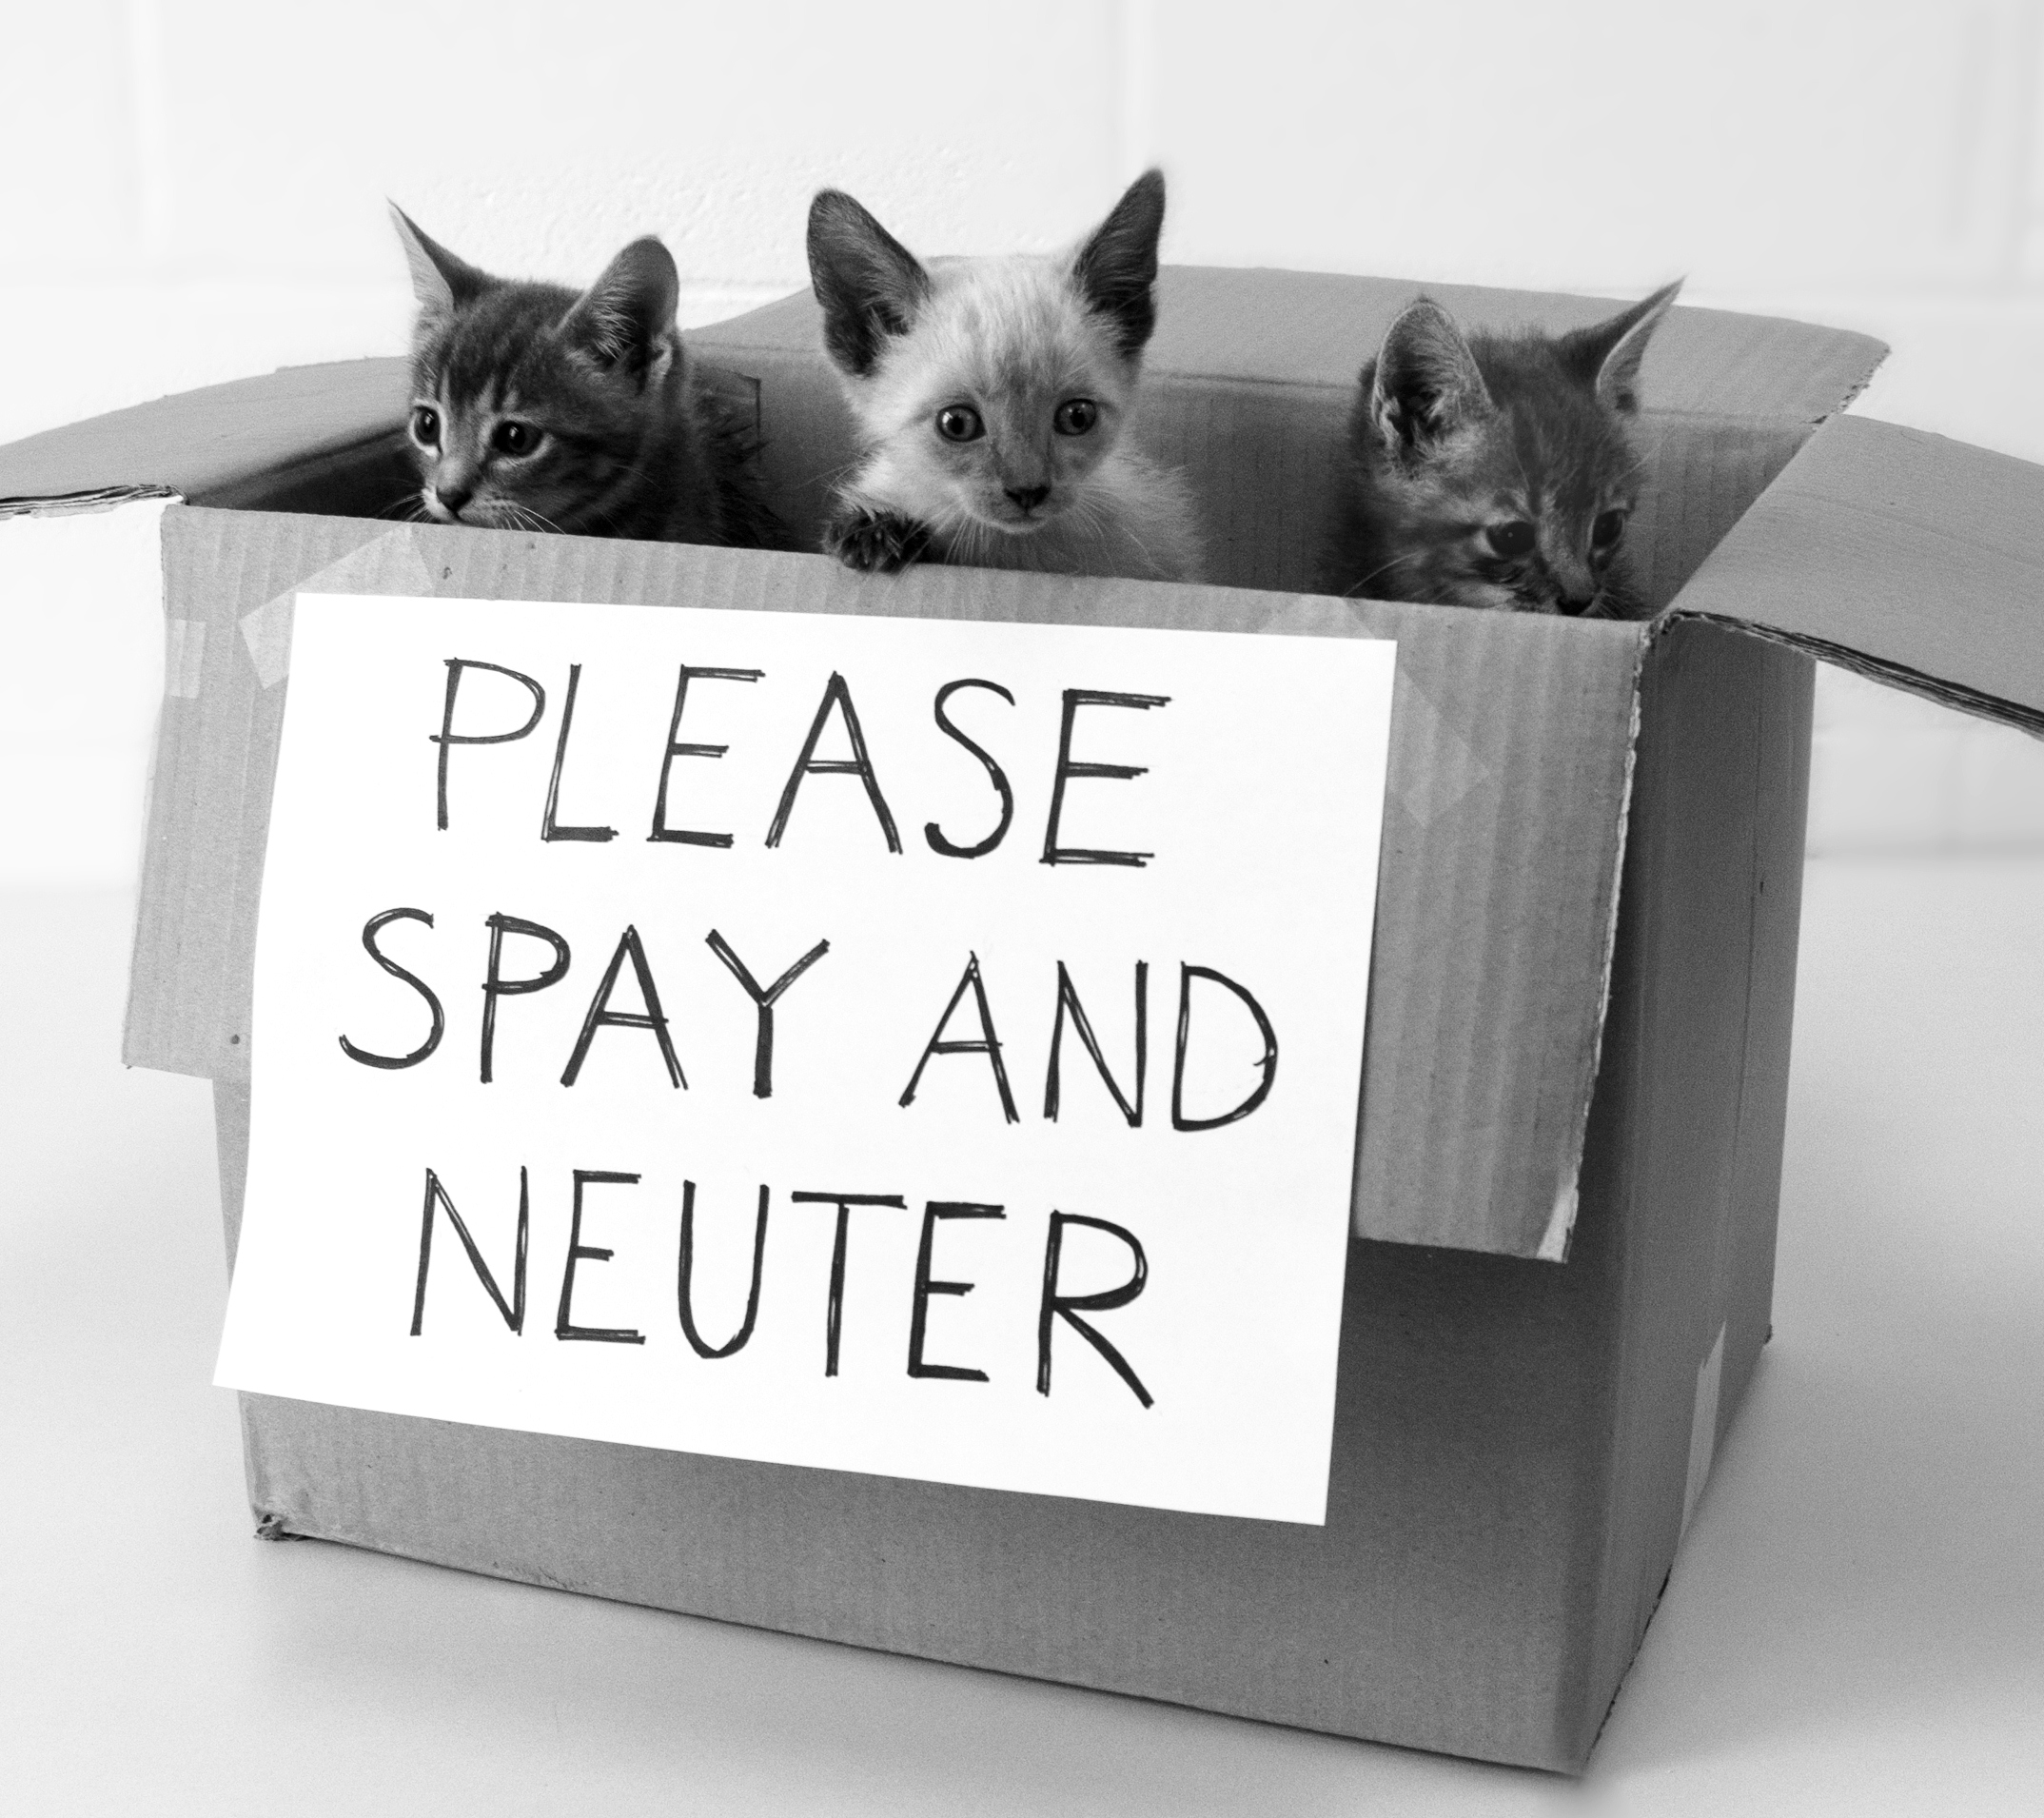 Where Can I Get My Cat Neutered For Free? Click To Know